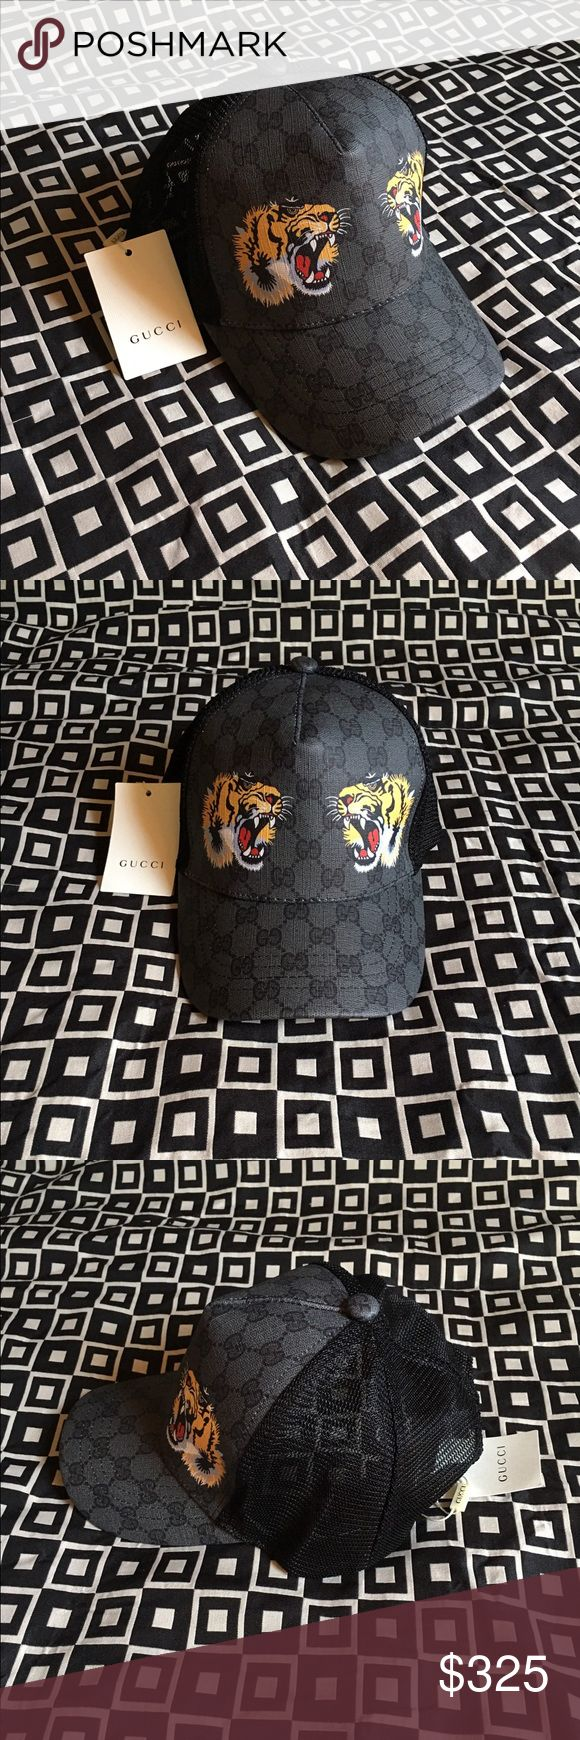 Gucci GG Tigers Print Hat!!! Gucci GG Tigers Print Baseball Hat!!! Brand New!!! Unisex...For Man Or Woman!!! Adjustable Strap!!! Comes Gucci Gift Box!!! Great Gift Idea!!! Last Available!!! Check My Listings For Other Great Items!!! Ignore: Gucci gg monogram casual dress belts men's women's guccissma leather monogram web tiger bee embossed panther wool cable knit blooms supreme print angry cat ufo dragon studded snake double g tigers fitted SnapBack cap Gucci Accessories Hats